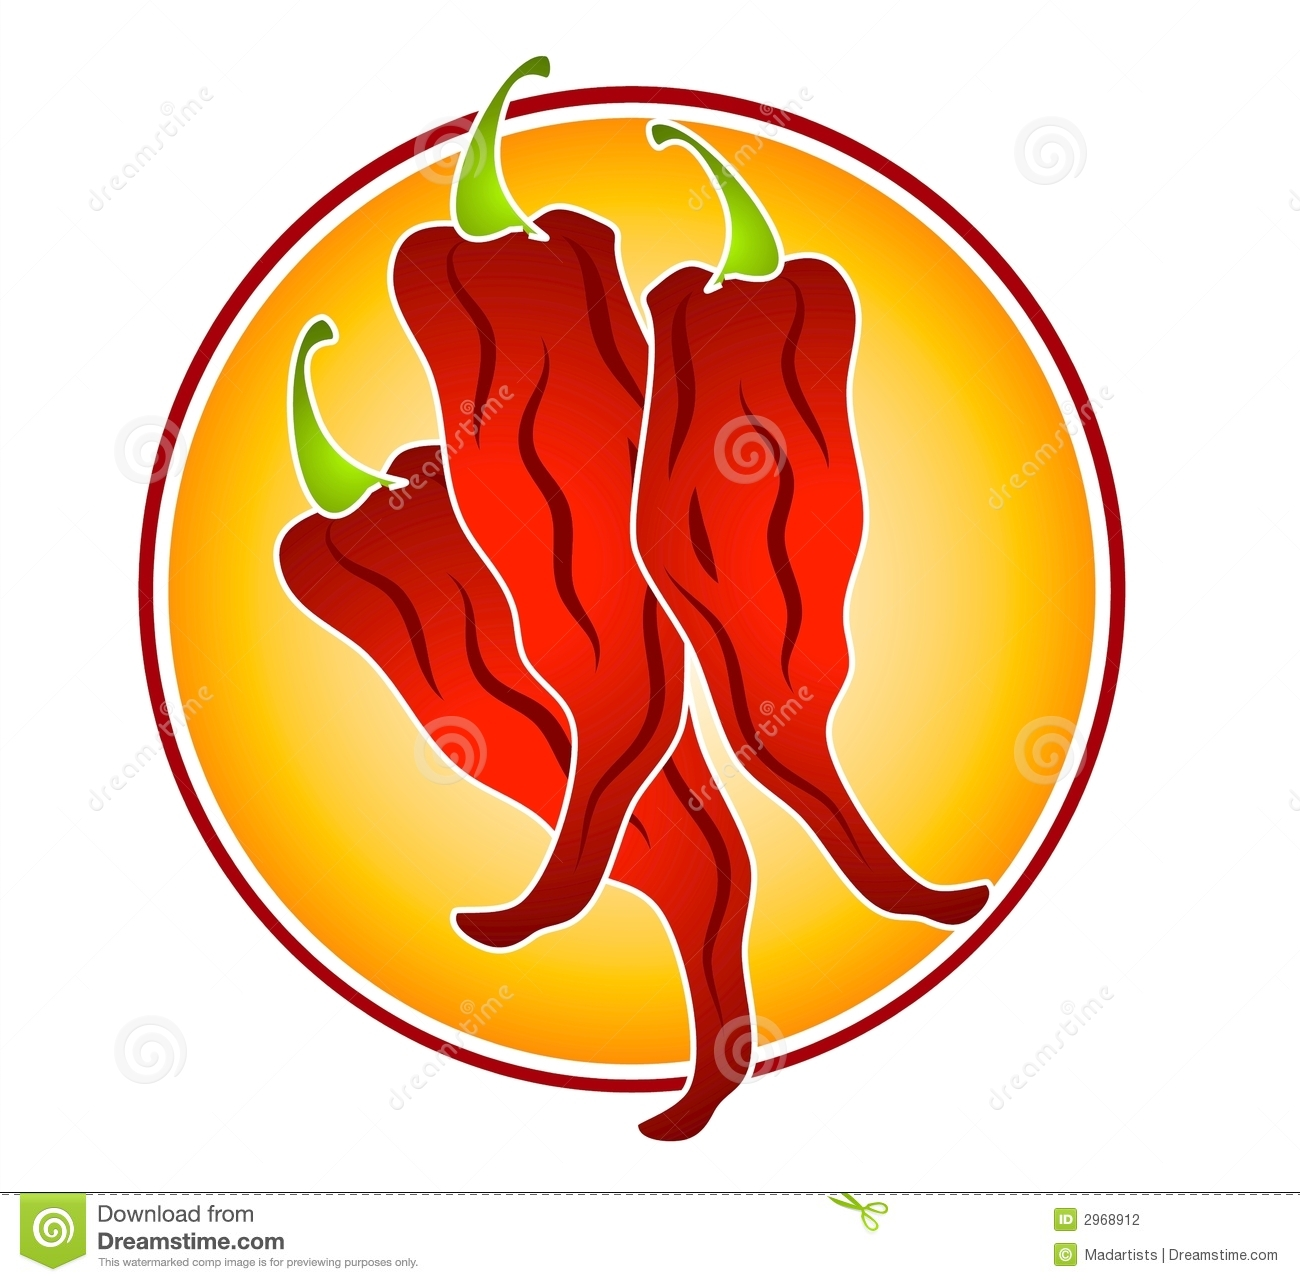 Chile Clipart Hot Red Chili Peppers Clip Art 2968912 Jpg